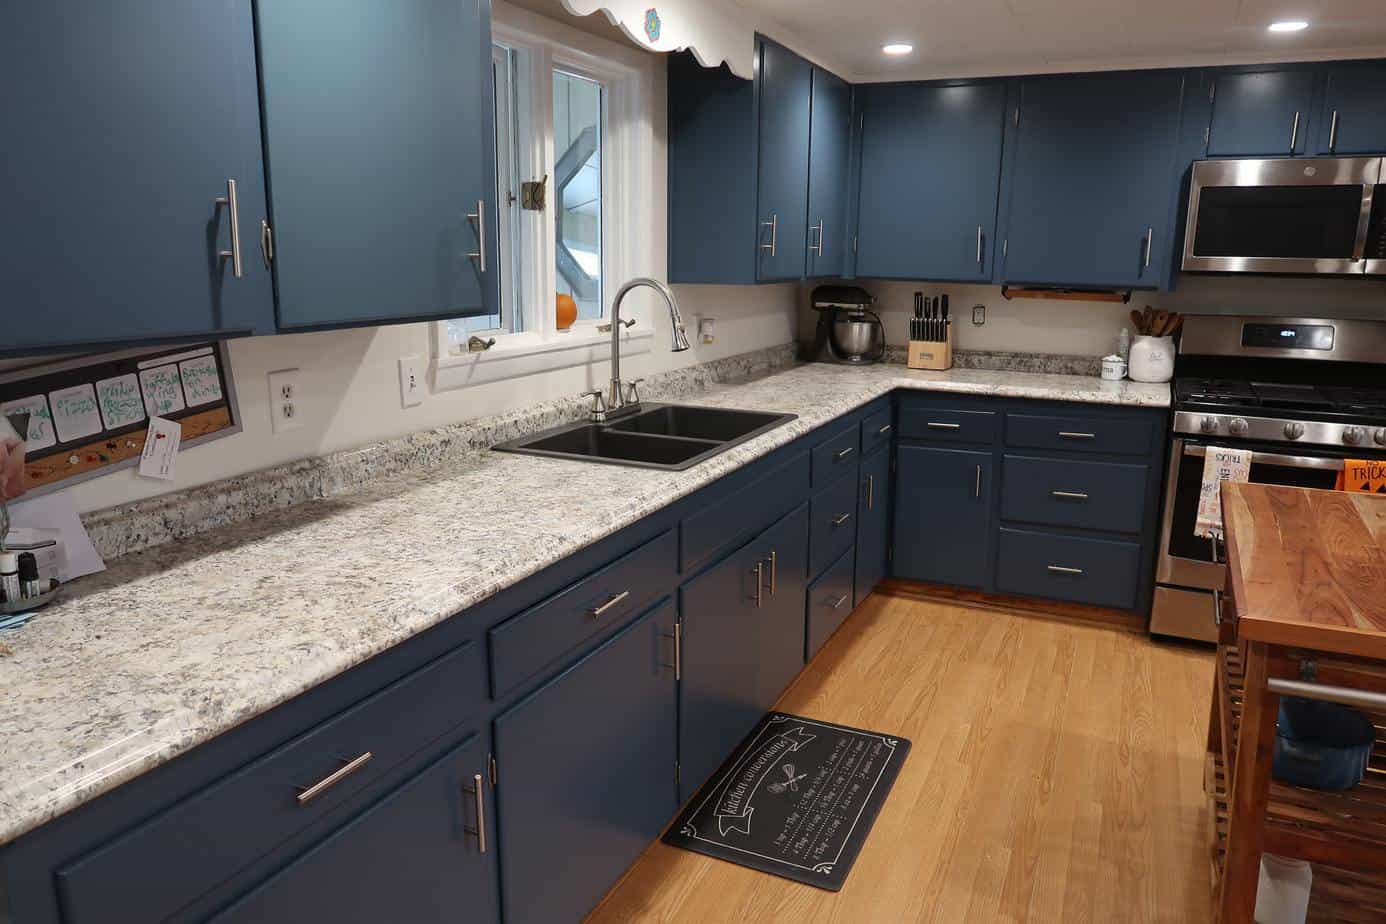 5 Diy Ways To Get New Countertops For Cheap